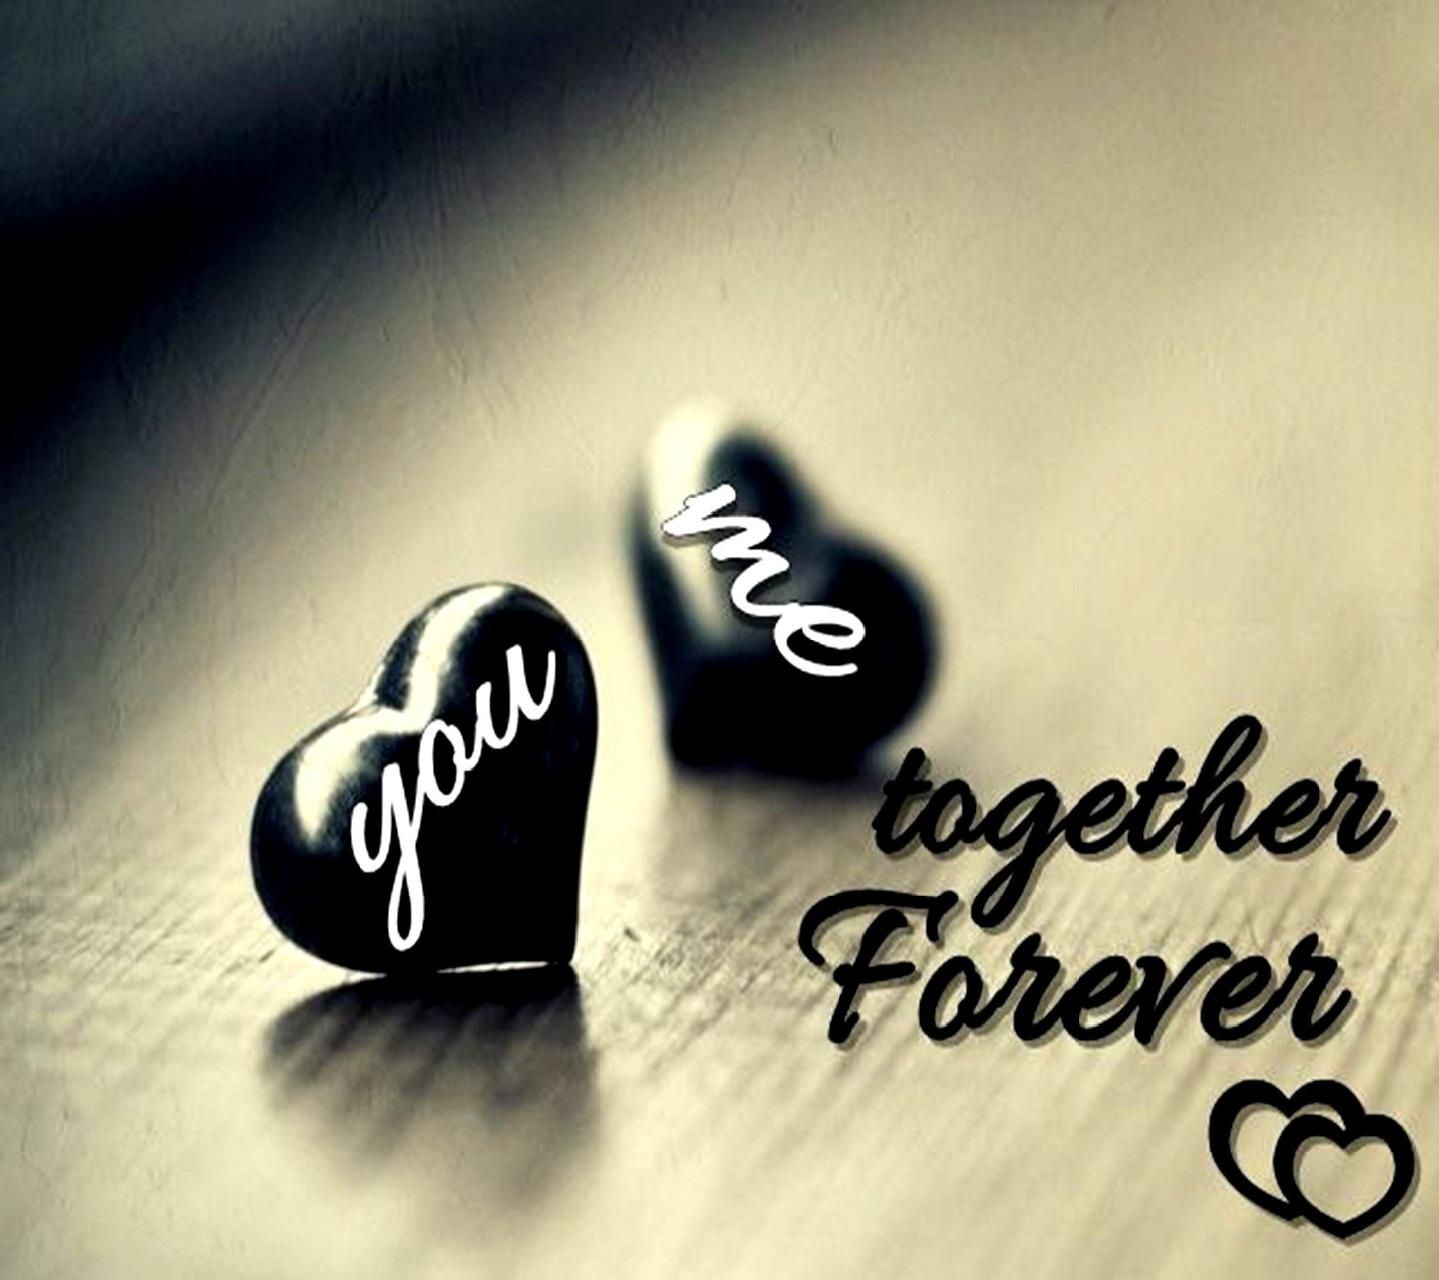 download love------------ wallpaper now. browse millions of popular